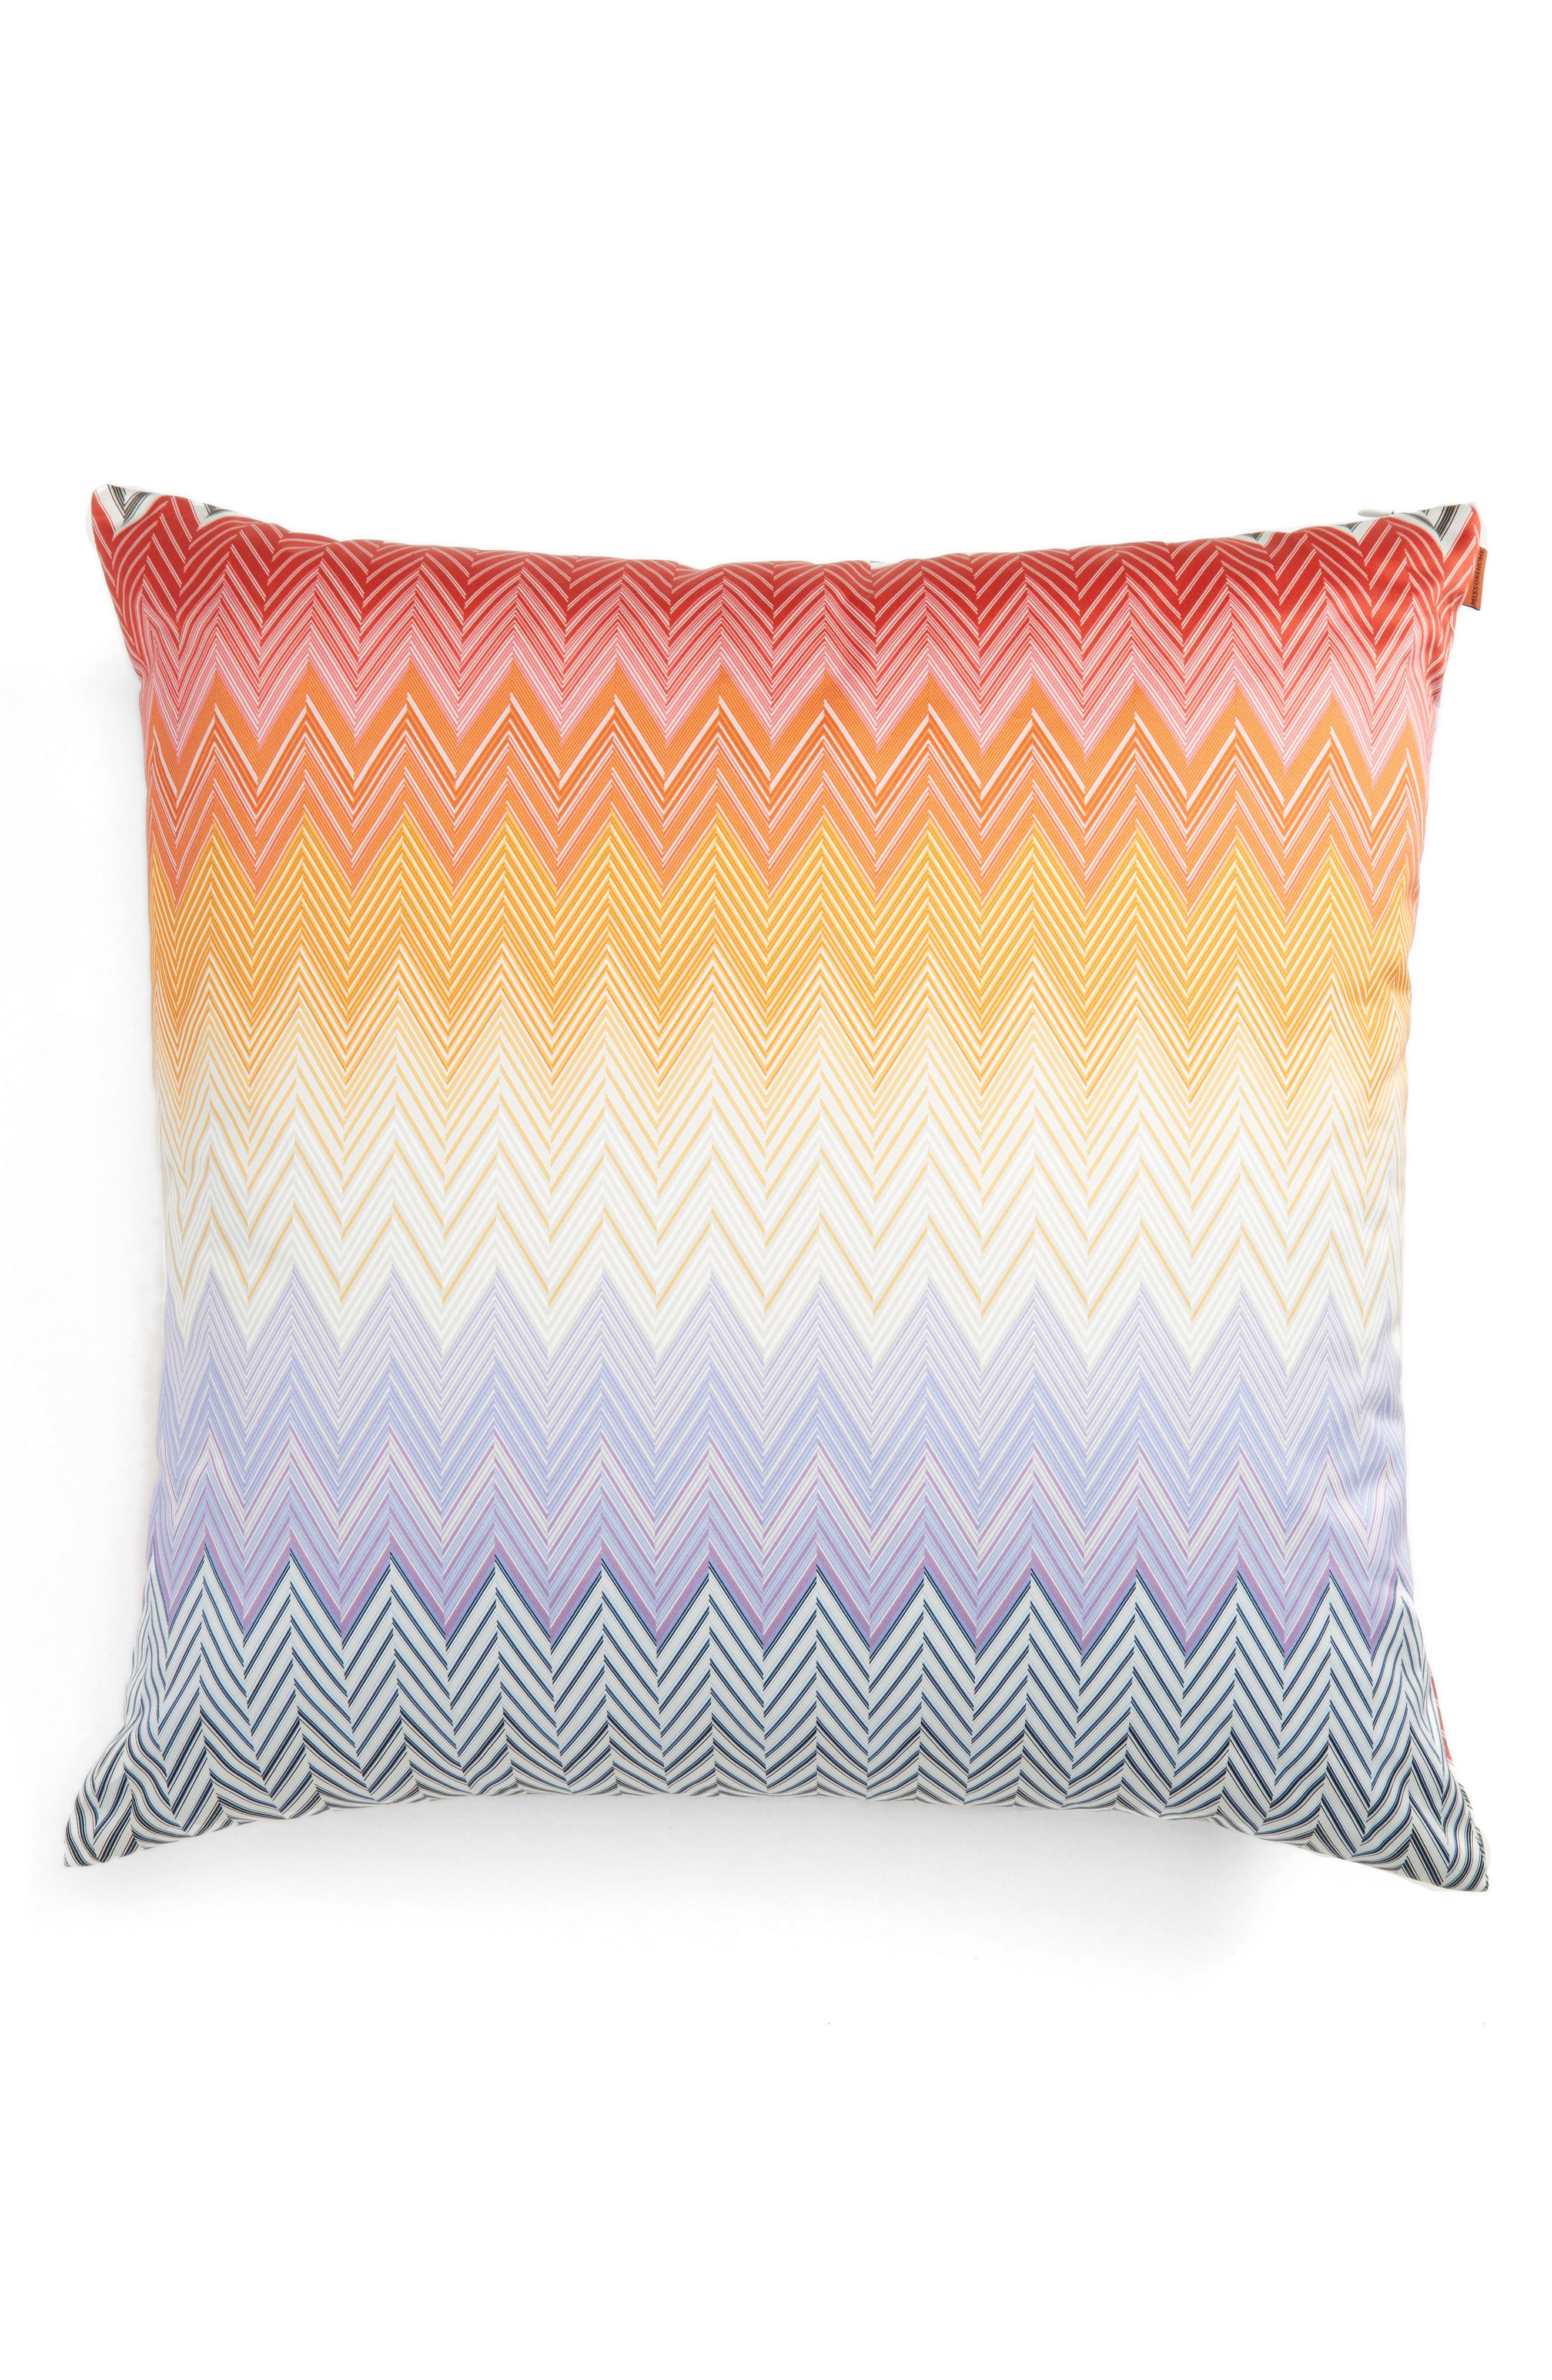 Sabaudia Accent Pillow,                             Alternate thumbnail 2, color,                             Multi Red